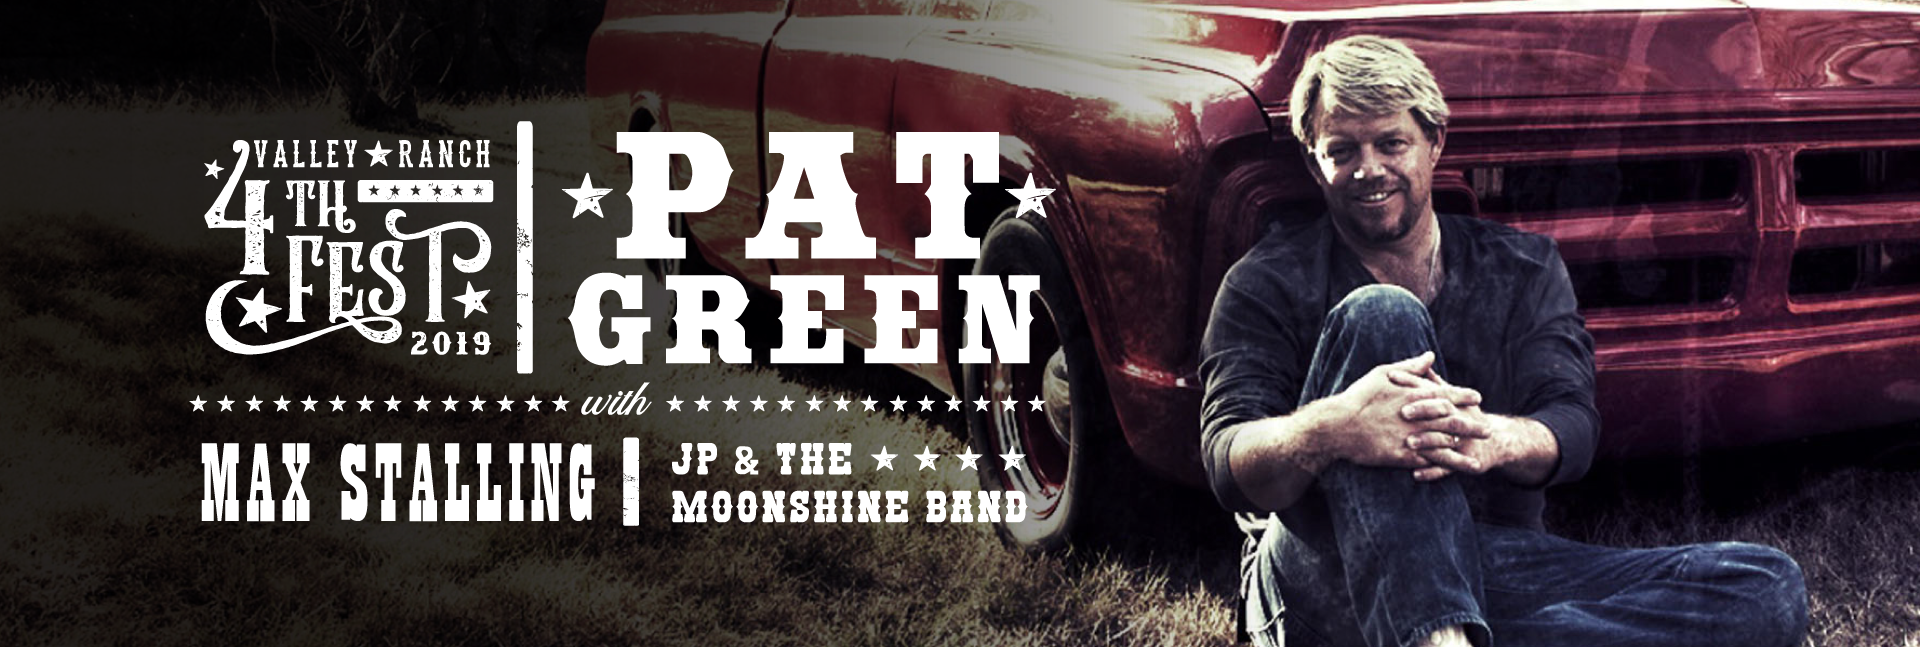 Pat Green to Headline Valley Ranch 4th Fest